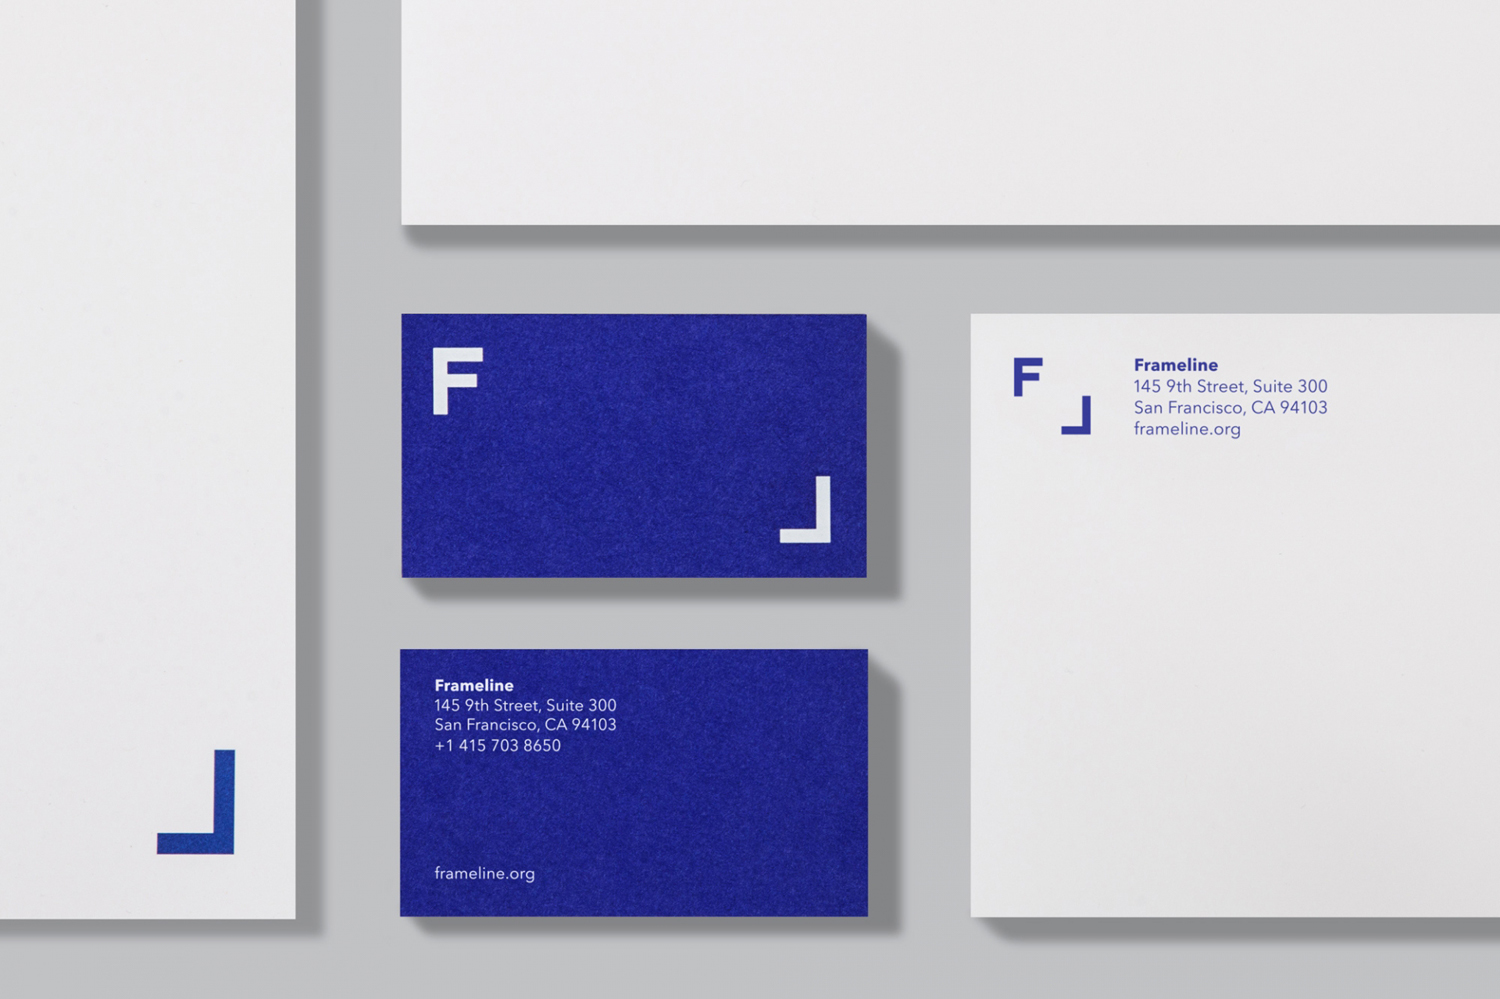 Business cards for LGBT film festival and non profit Frameline by Mucho. These feature a bright blue spot colour.